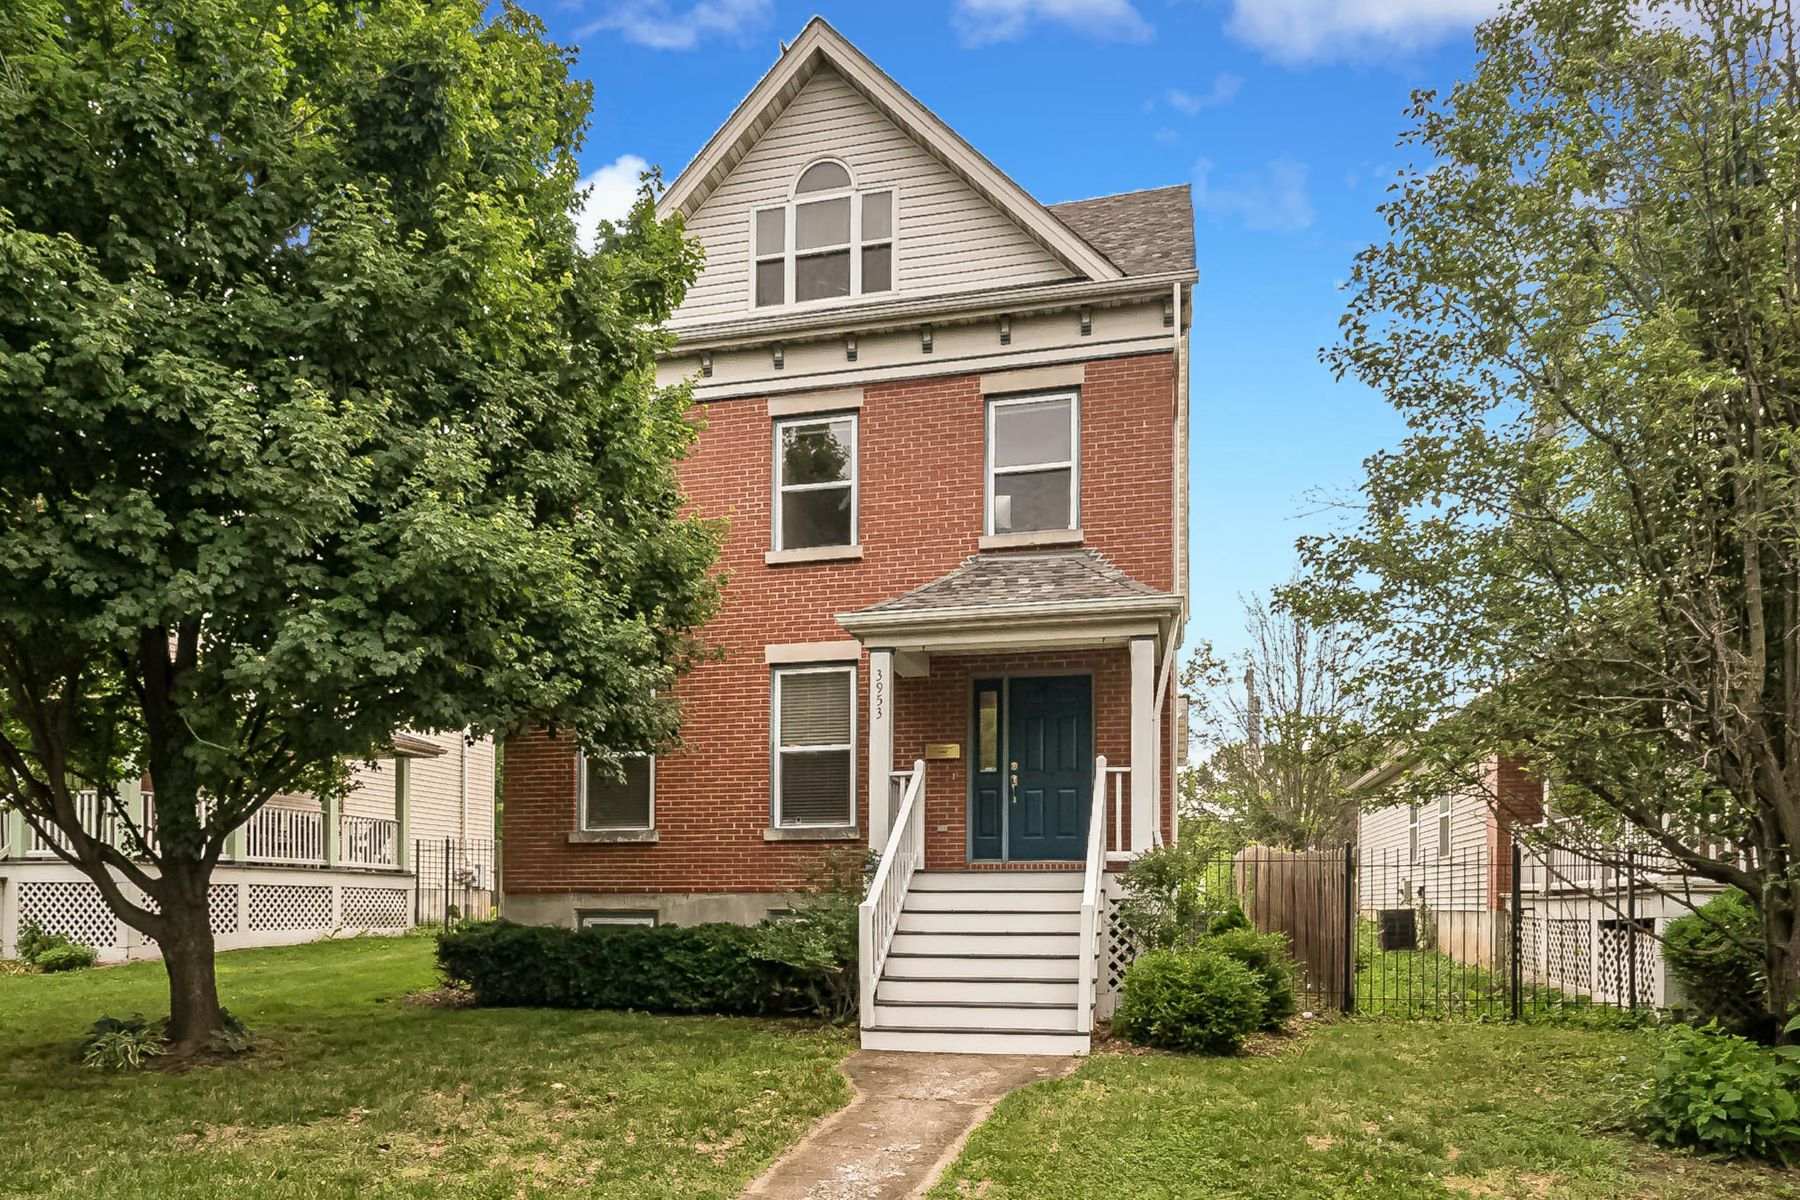 Single Family Homes for Sale at Newer 2 1/2 Story in a Hot Neighborhood! 3953 Westminster Place St. Louis, Missouri 63108 United States